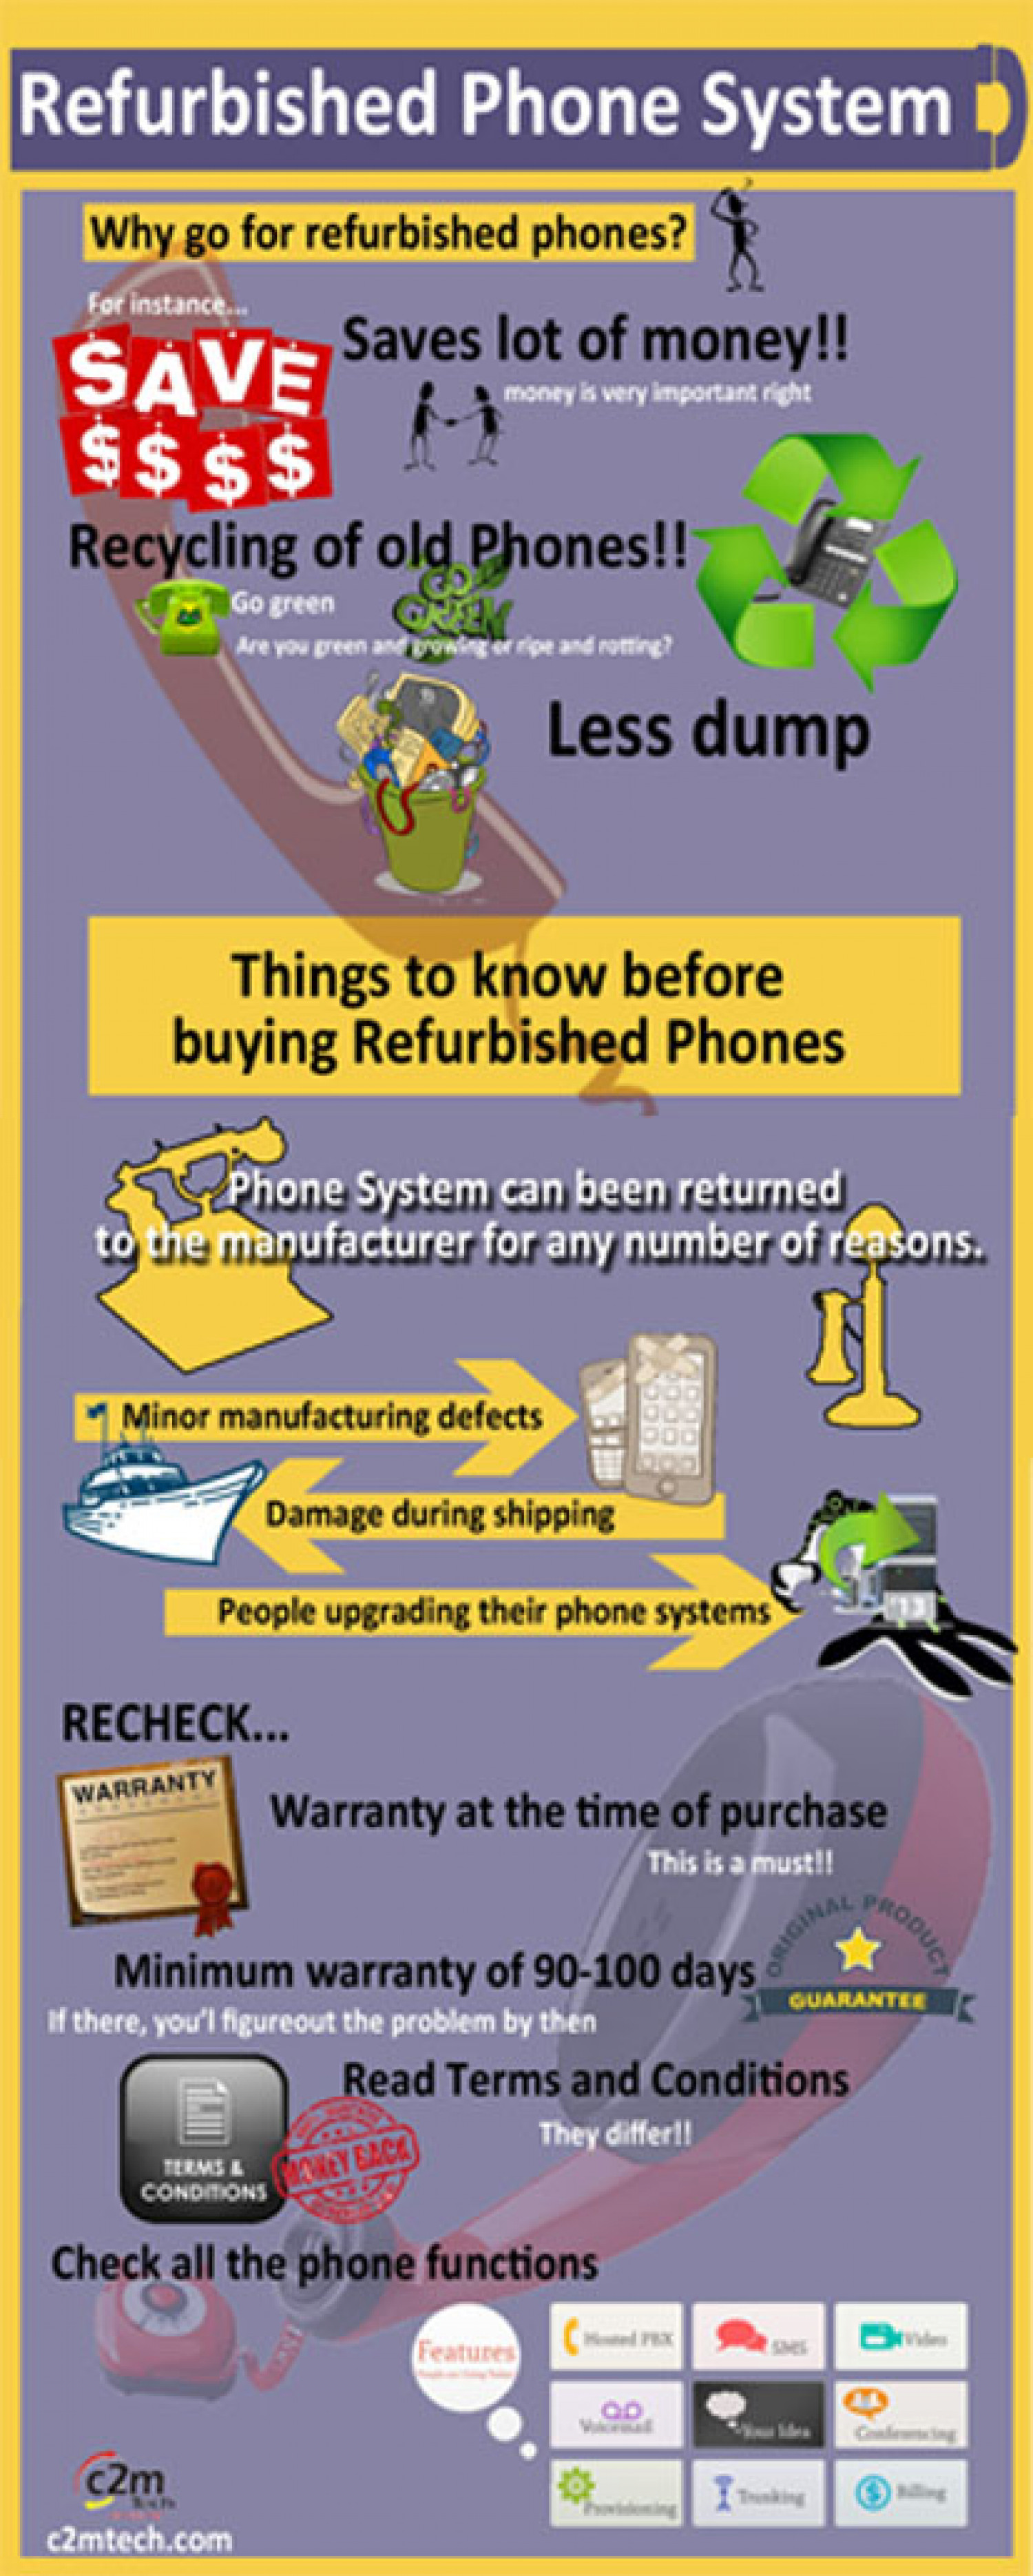 Refurbished Phone Systems Infographic